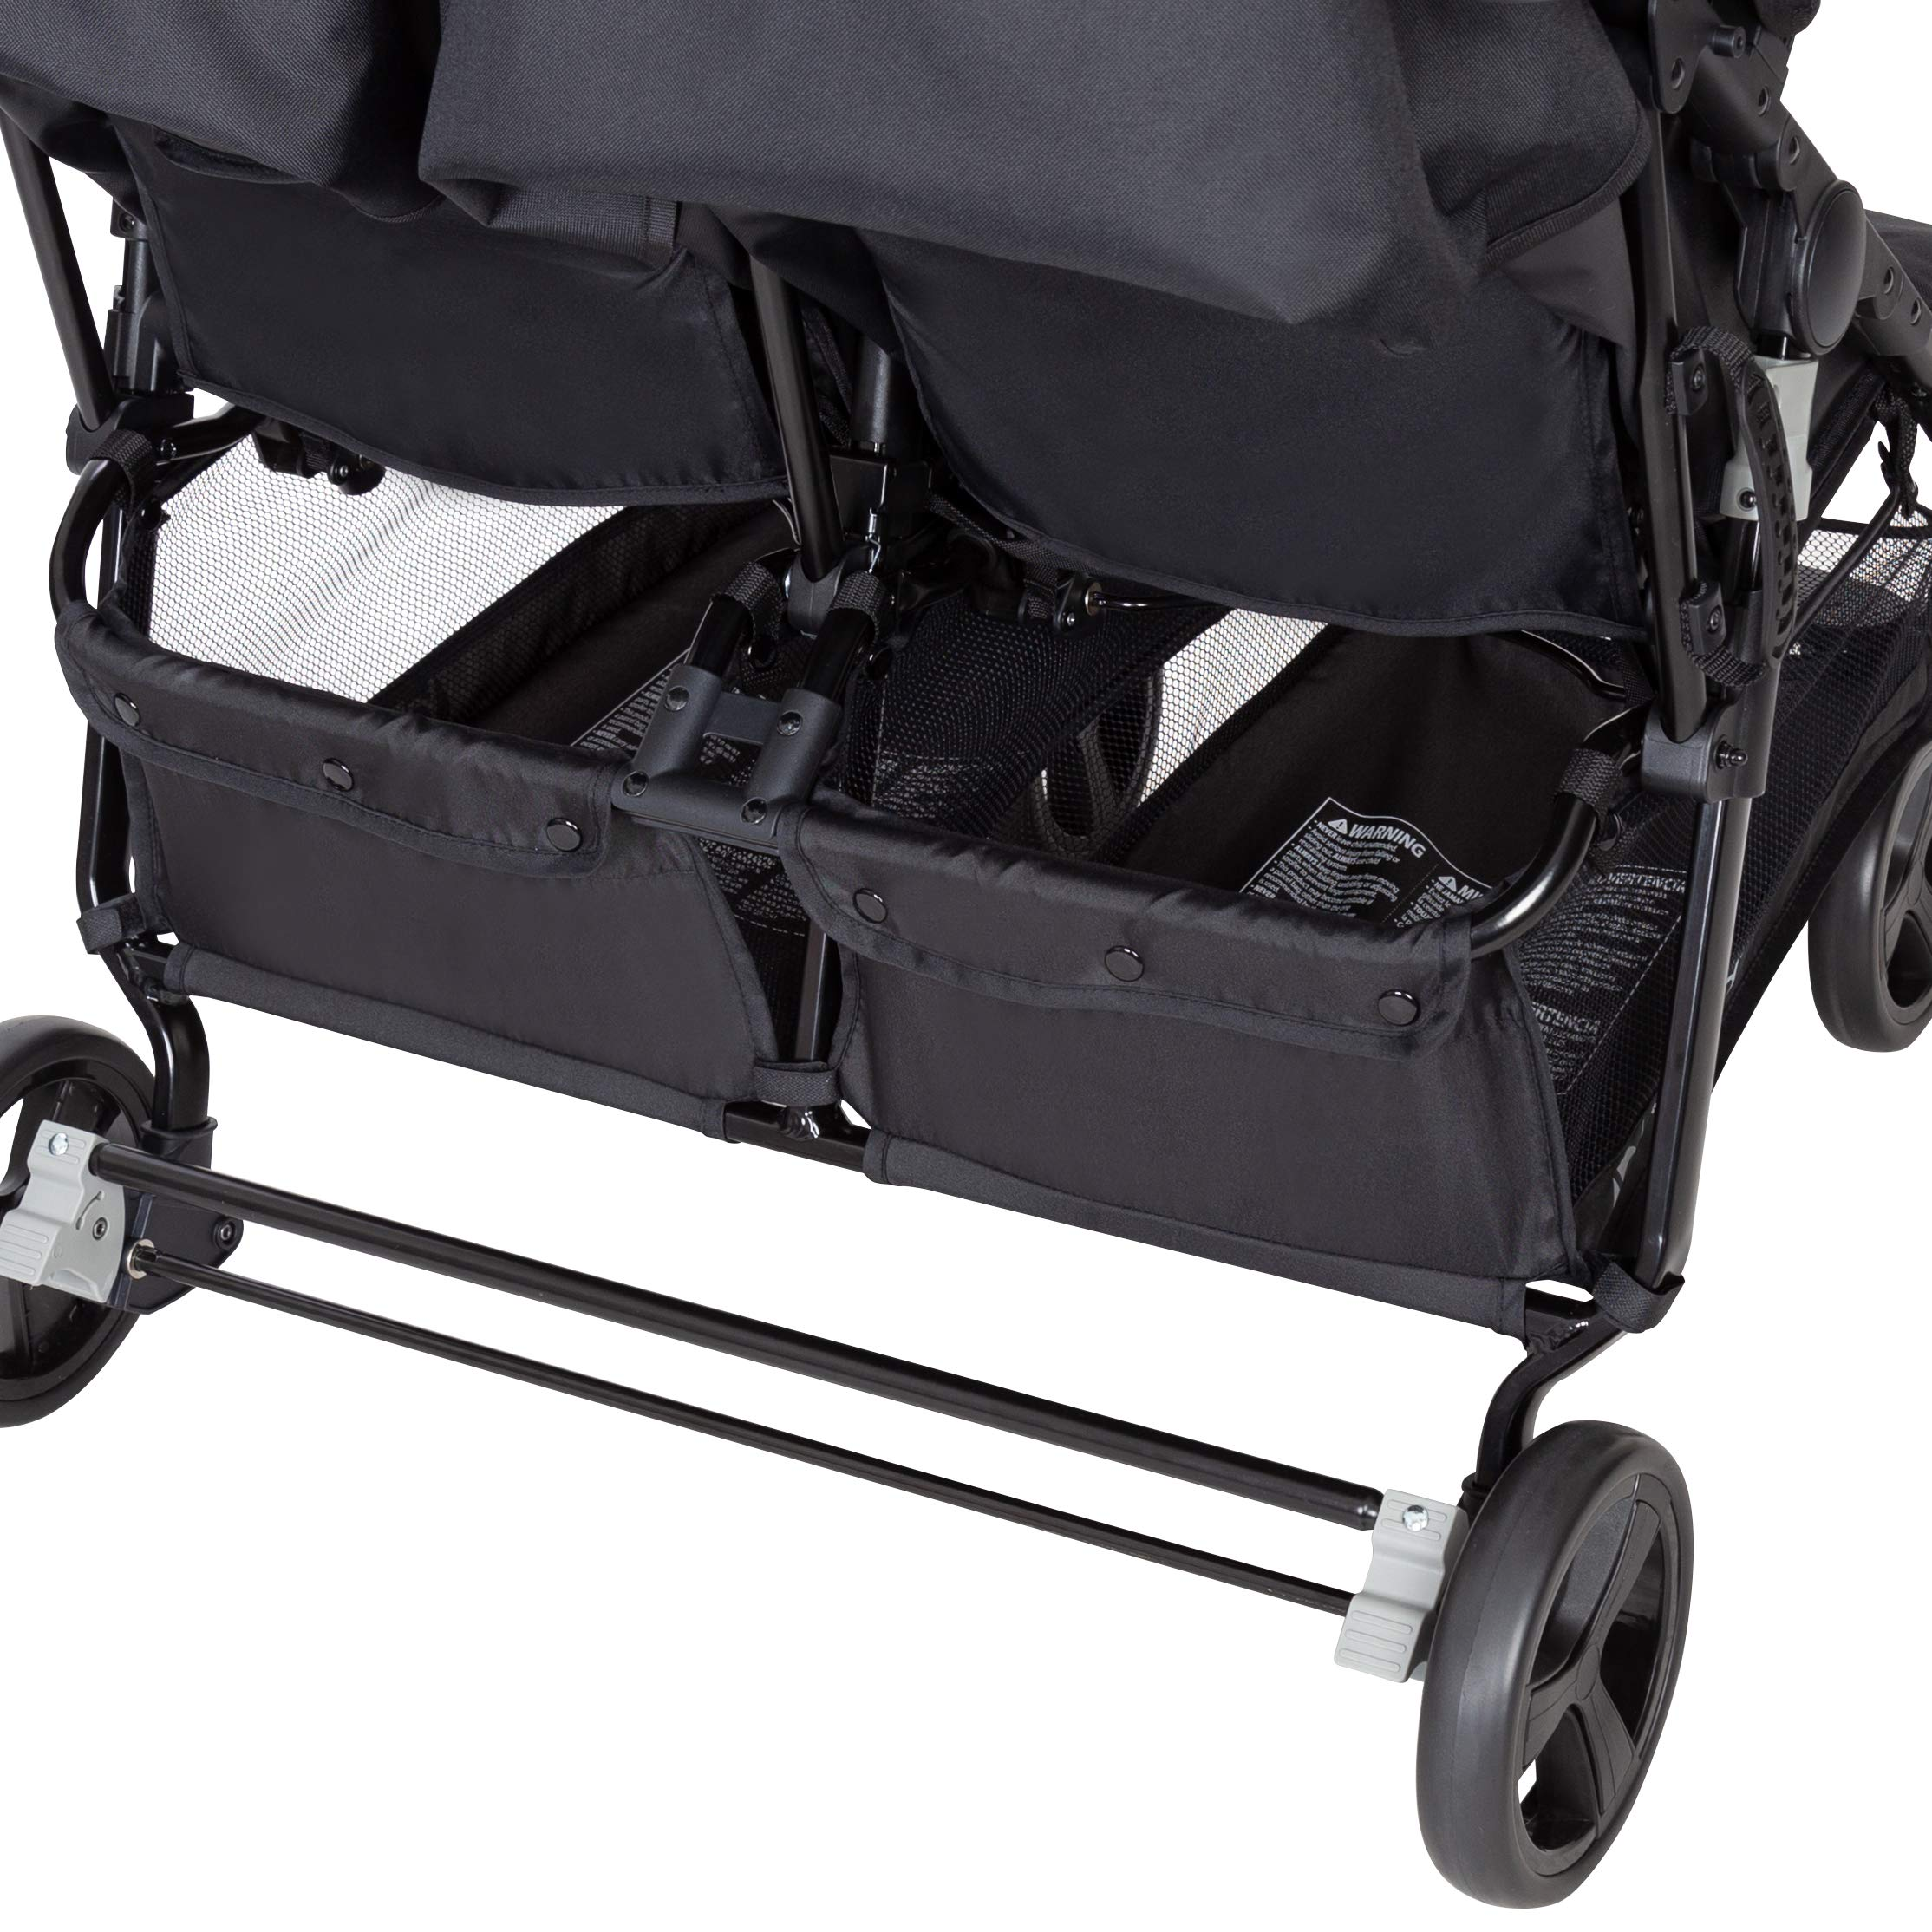 Baby Trend Lightweight Double Stroller, Super Sonic by Baby Trend (Image #4)